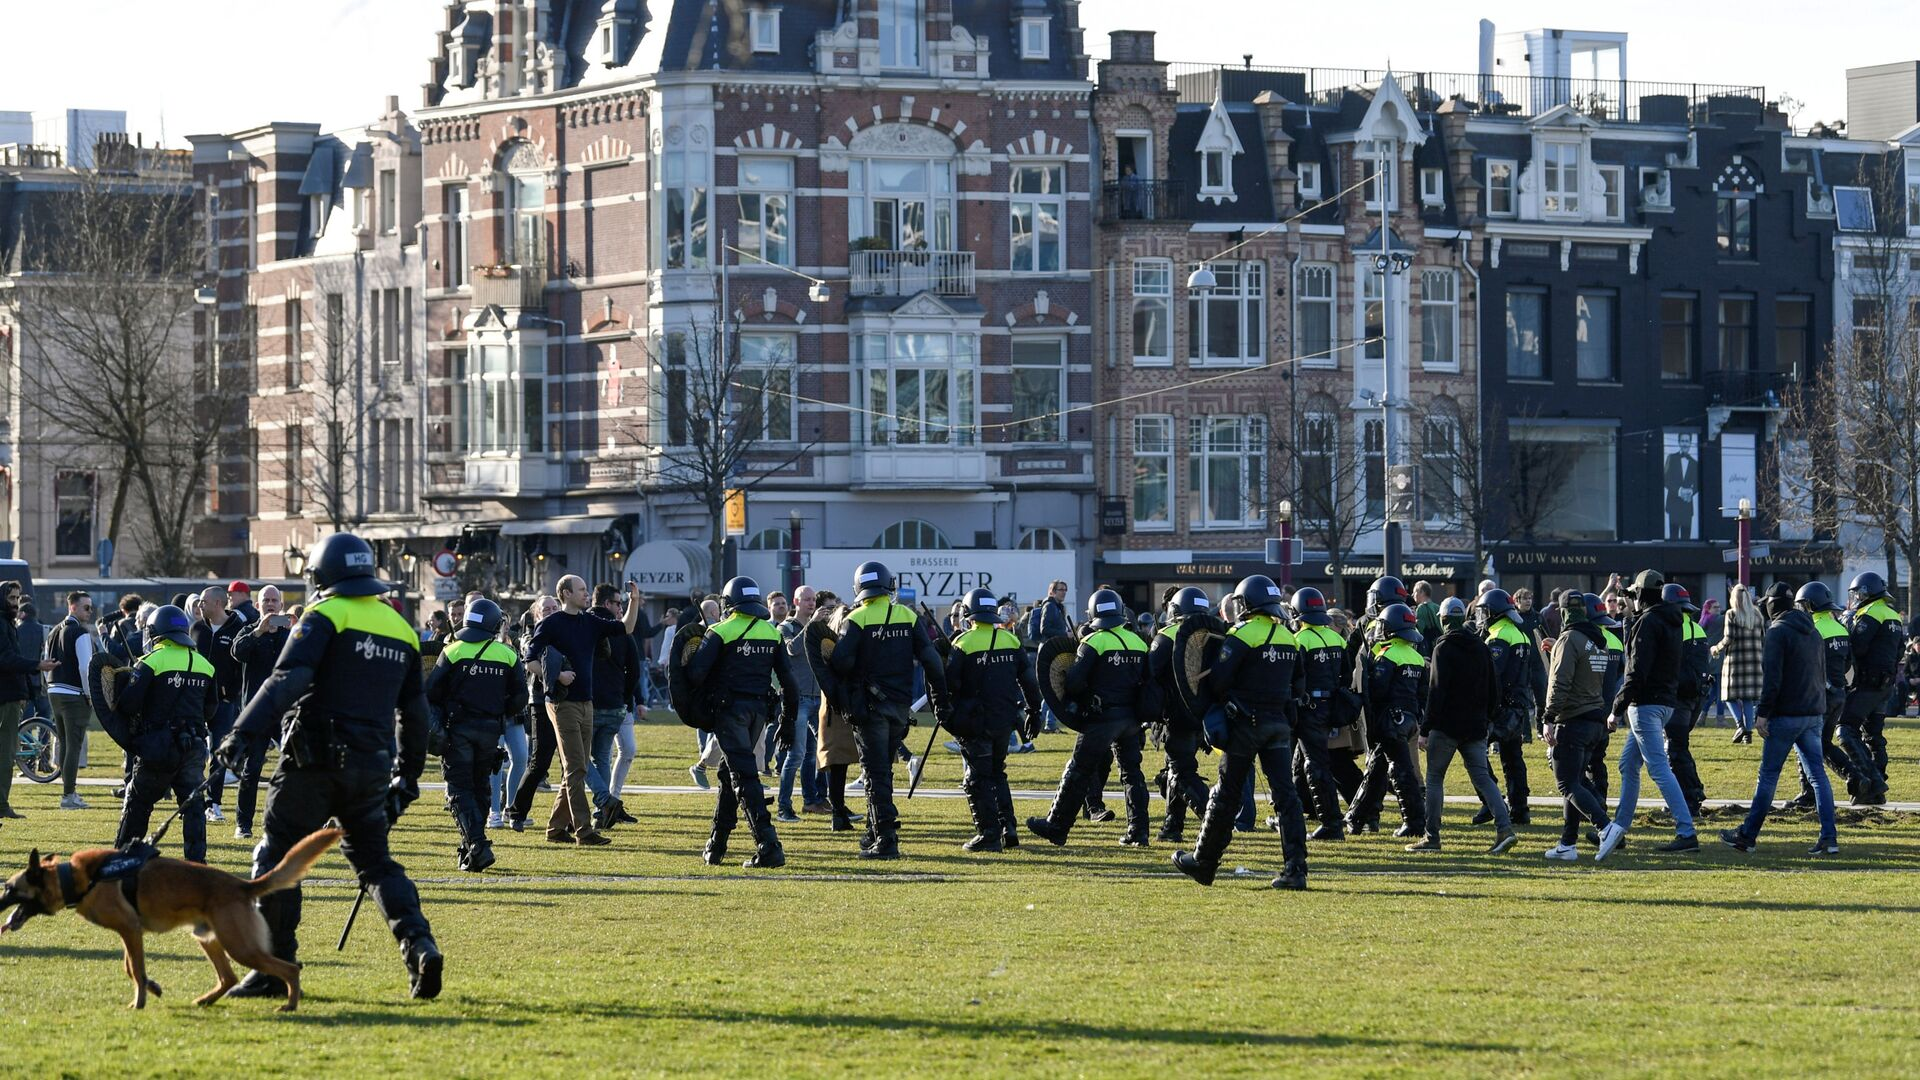 Police officers are seen, as people protest against the coronavirus disease (COVID-19) restrictions in Amsterdam, Netherlands, February 21, 2021. - Sputnik International, 1920, 27.09.2021